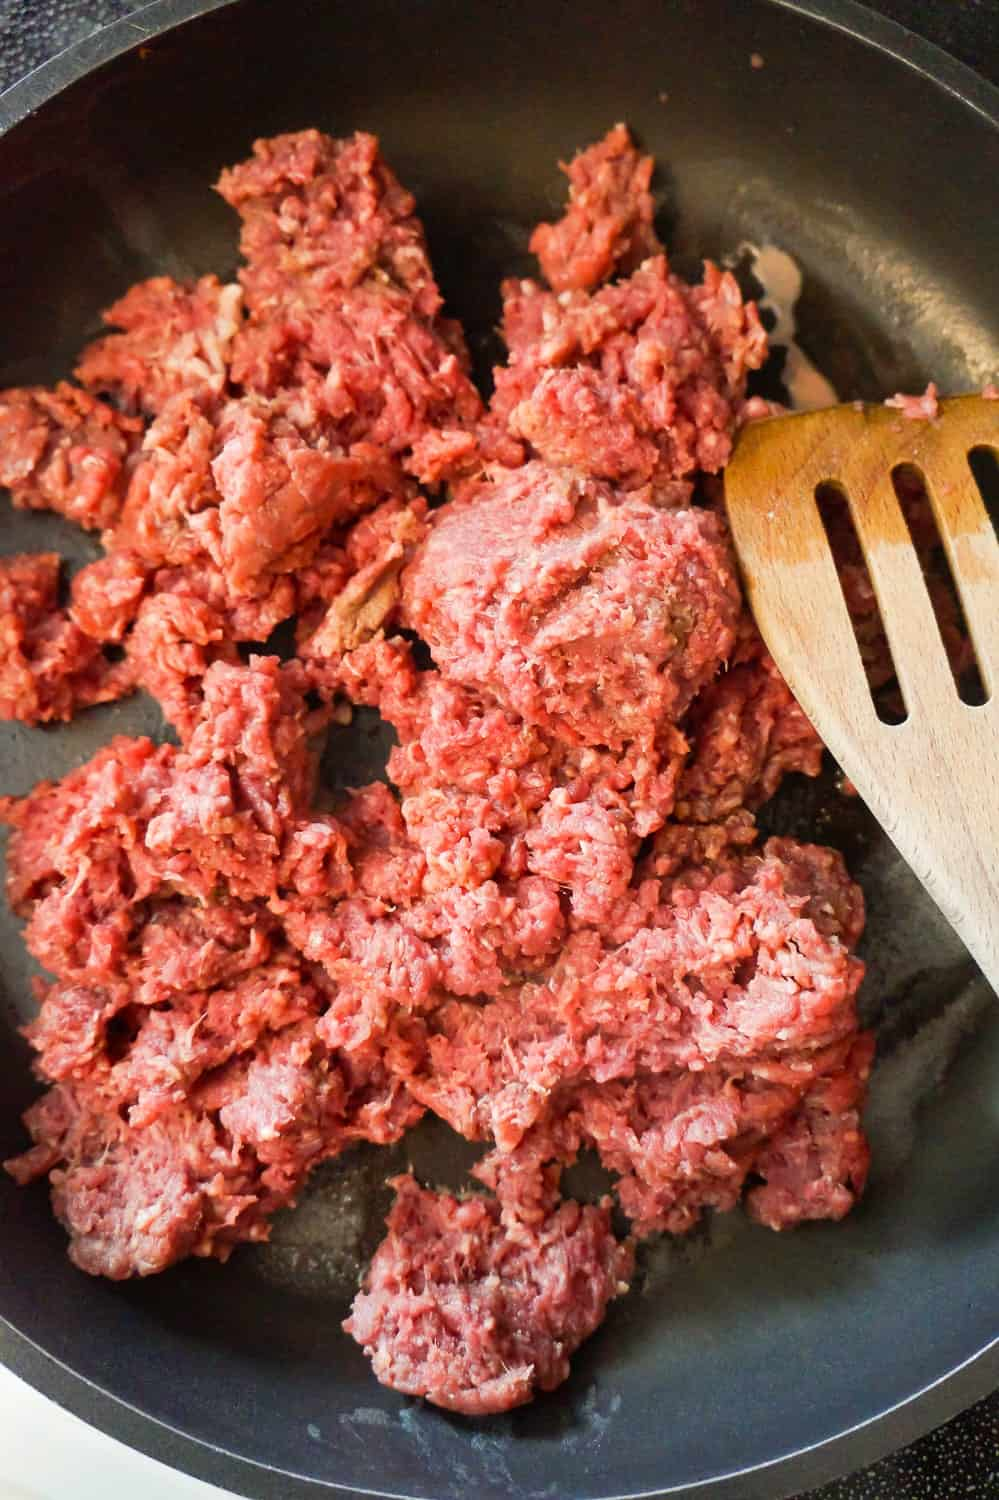 raw ground beef in a frying pan